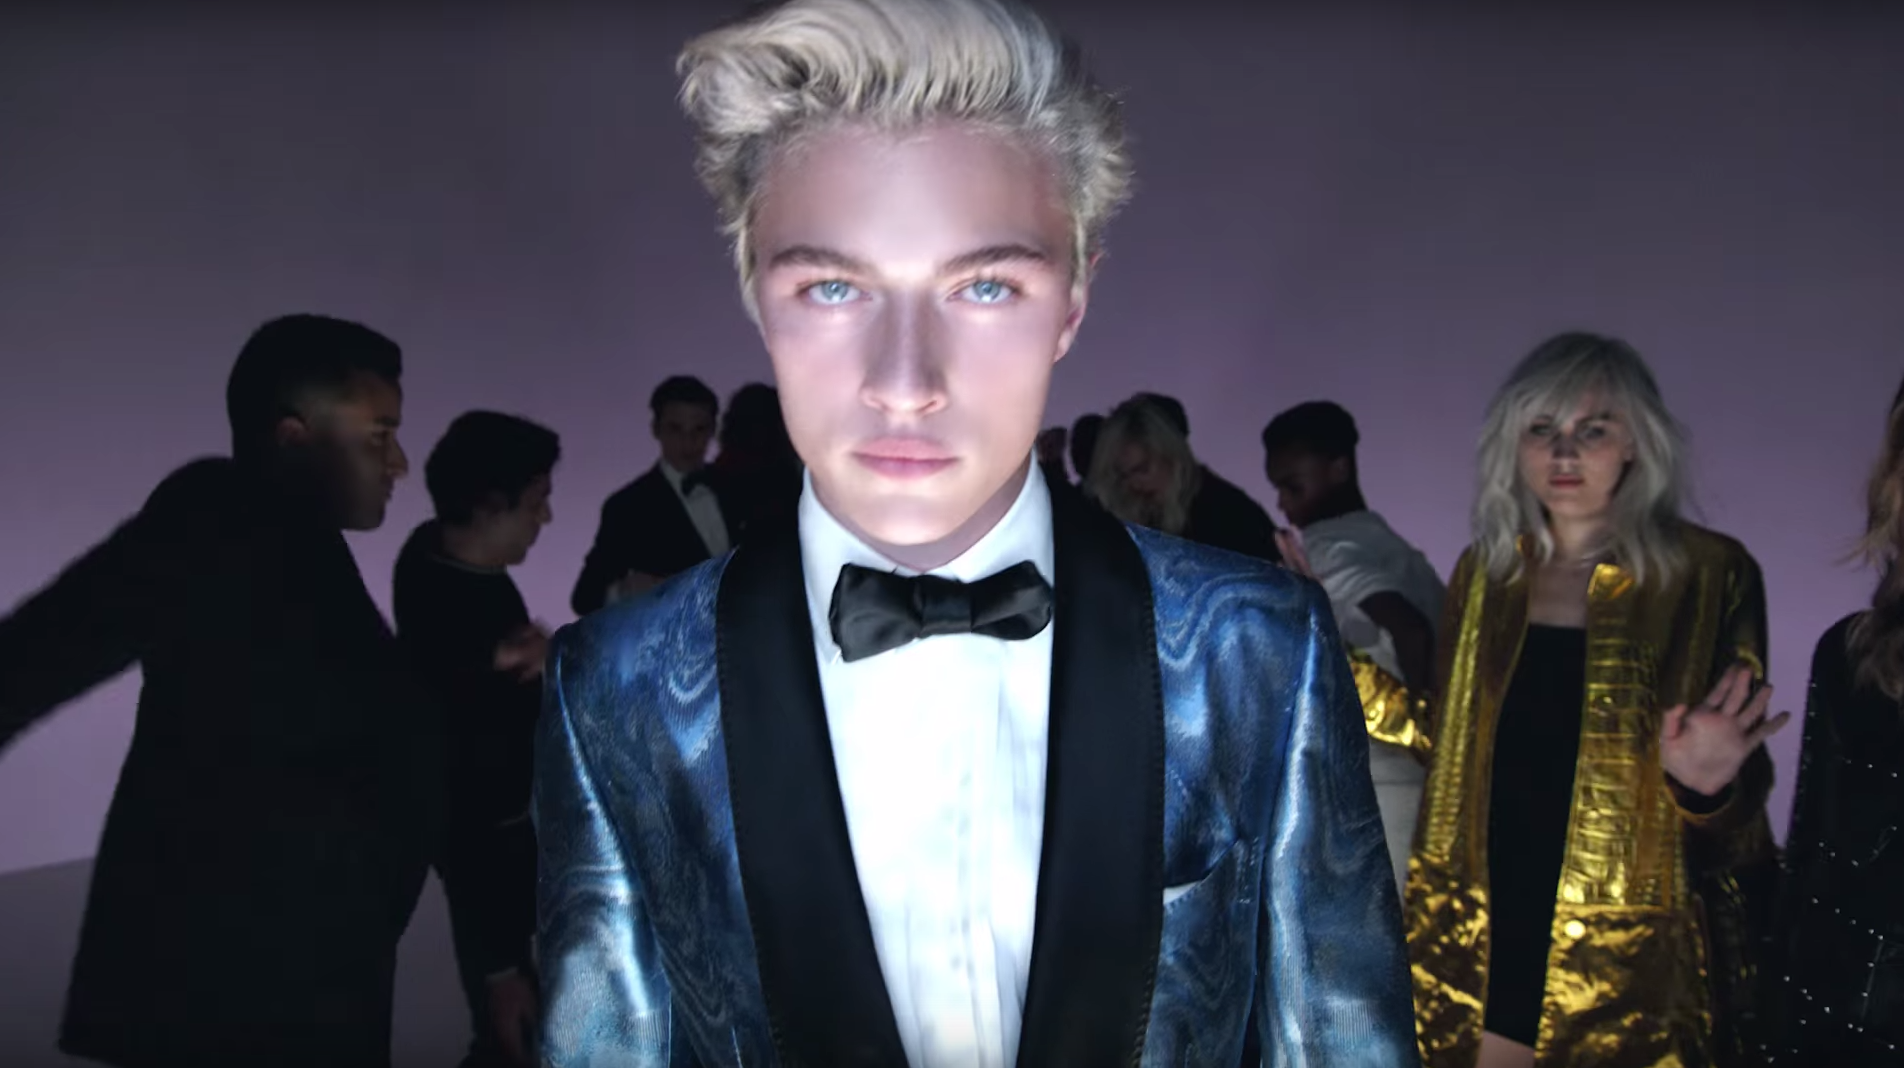 Lucky Blue Smith + More Models Join Lady Gaga for Tom Ford Video